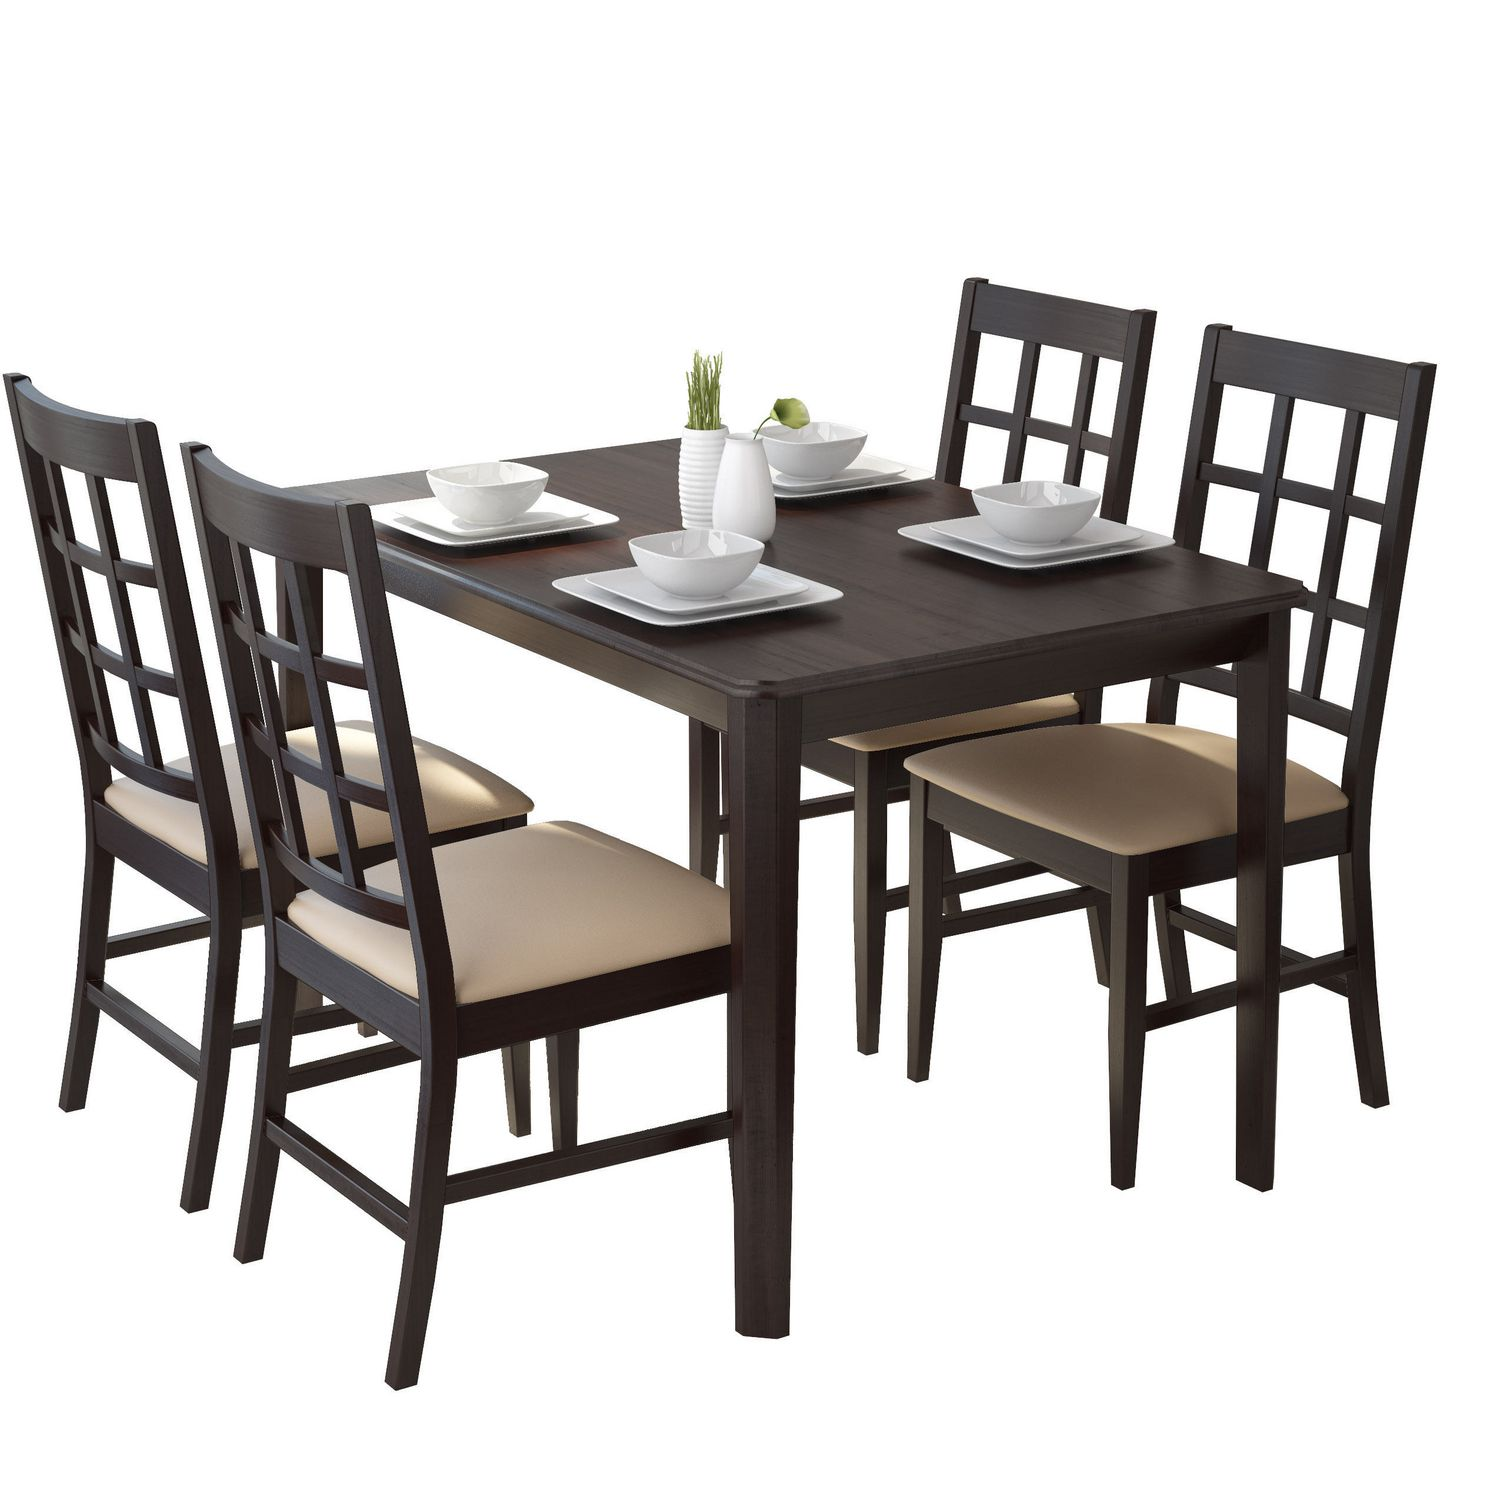 CorLiving Atwood 5-Piece Dining Set With Grey Stone